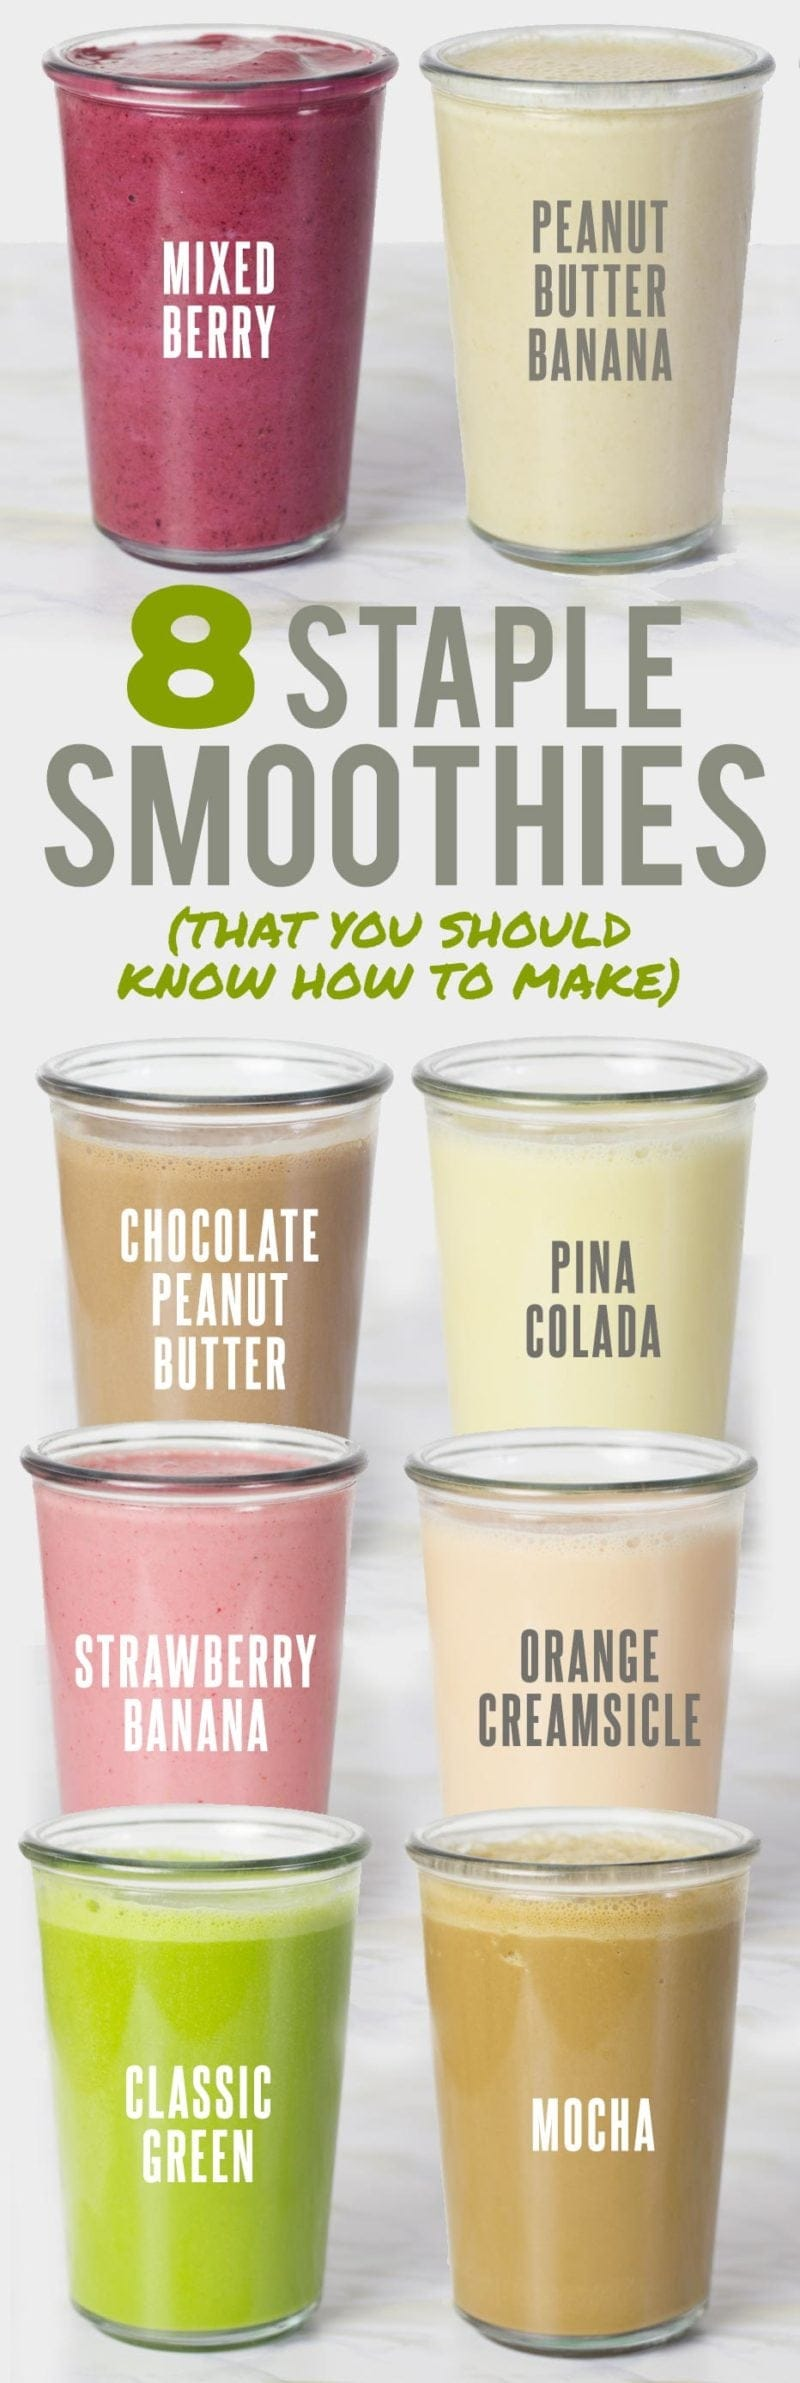 '8 Staple Smoothies That You Should Know How to Make' from the web at 'https://wholefully.com/wp-content/uploads/2016/01/pin-800x2383.jpg'